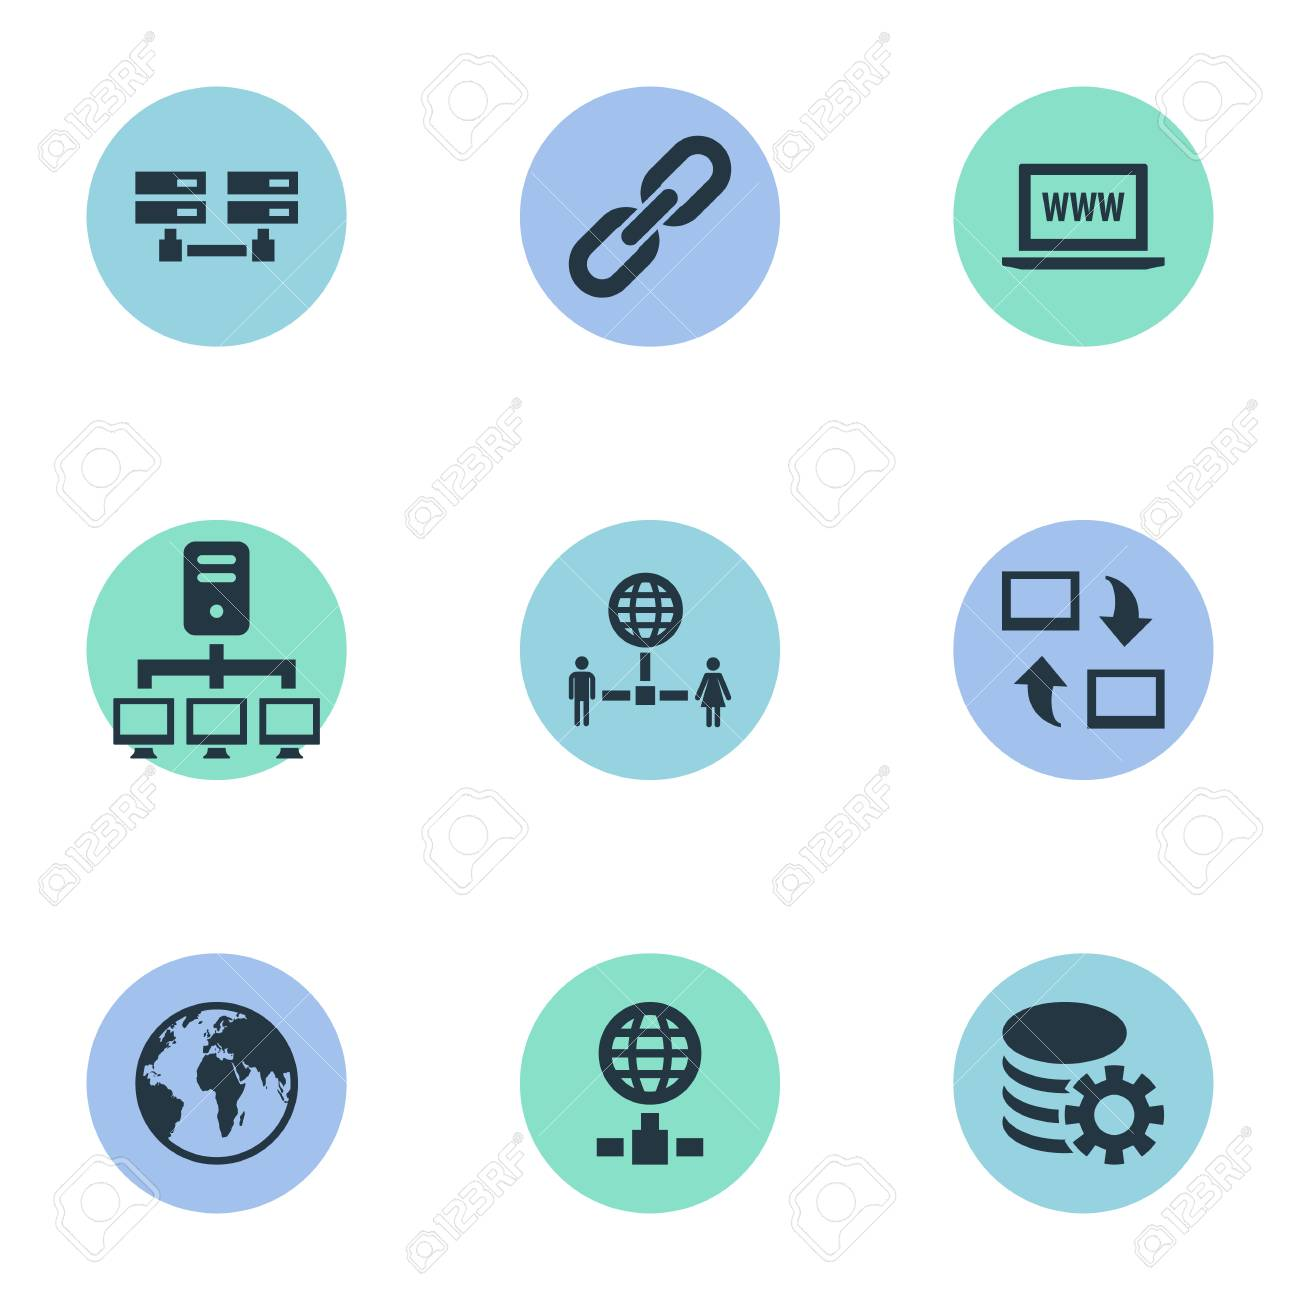 Elements Networking, Website, Database And Other Synonyms Internet, Hyperlink And Computer. Vector Illustration Set Of Simple Web Icons. - 83338610